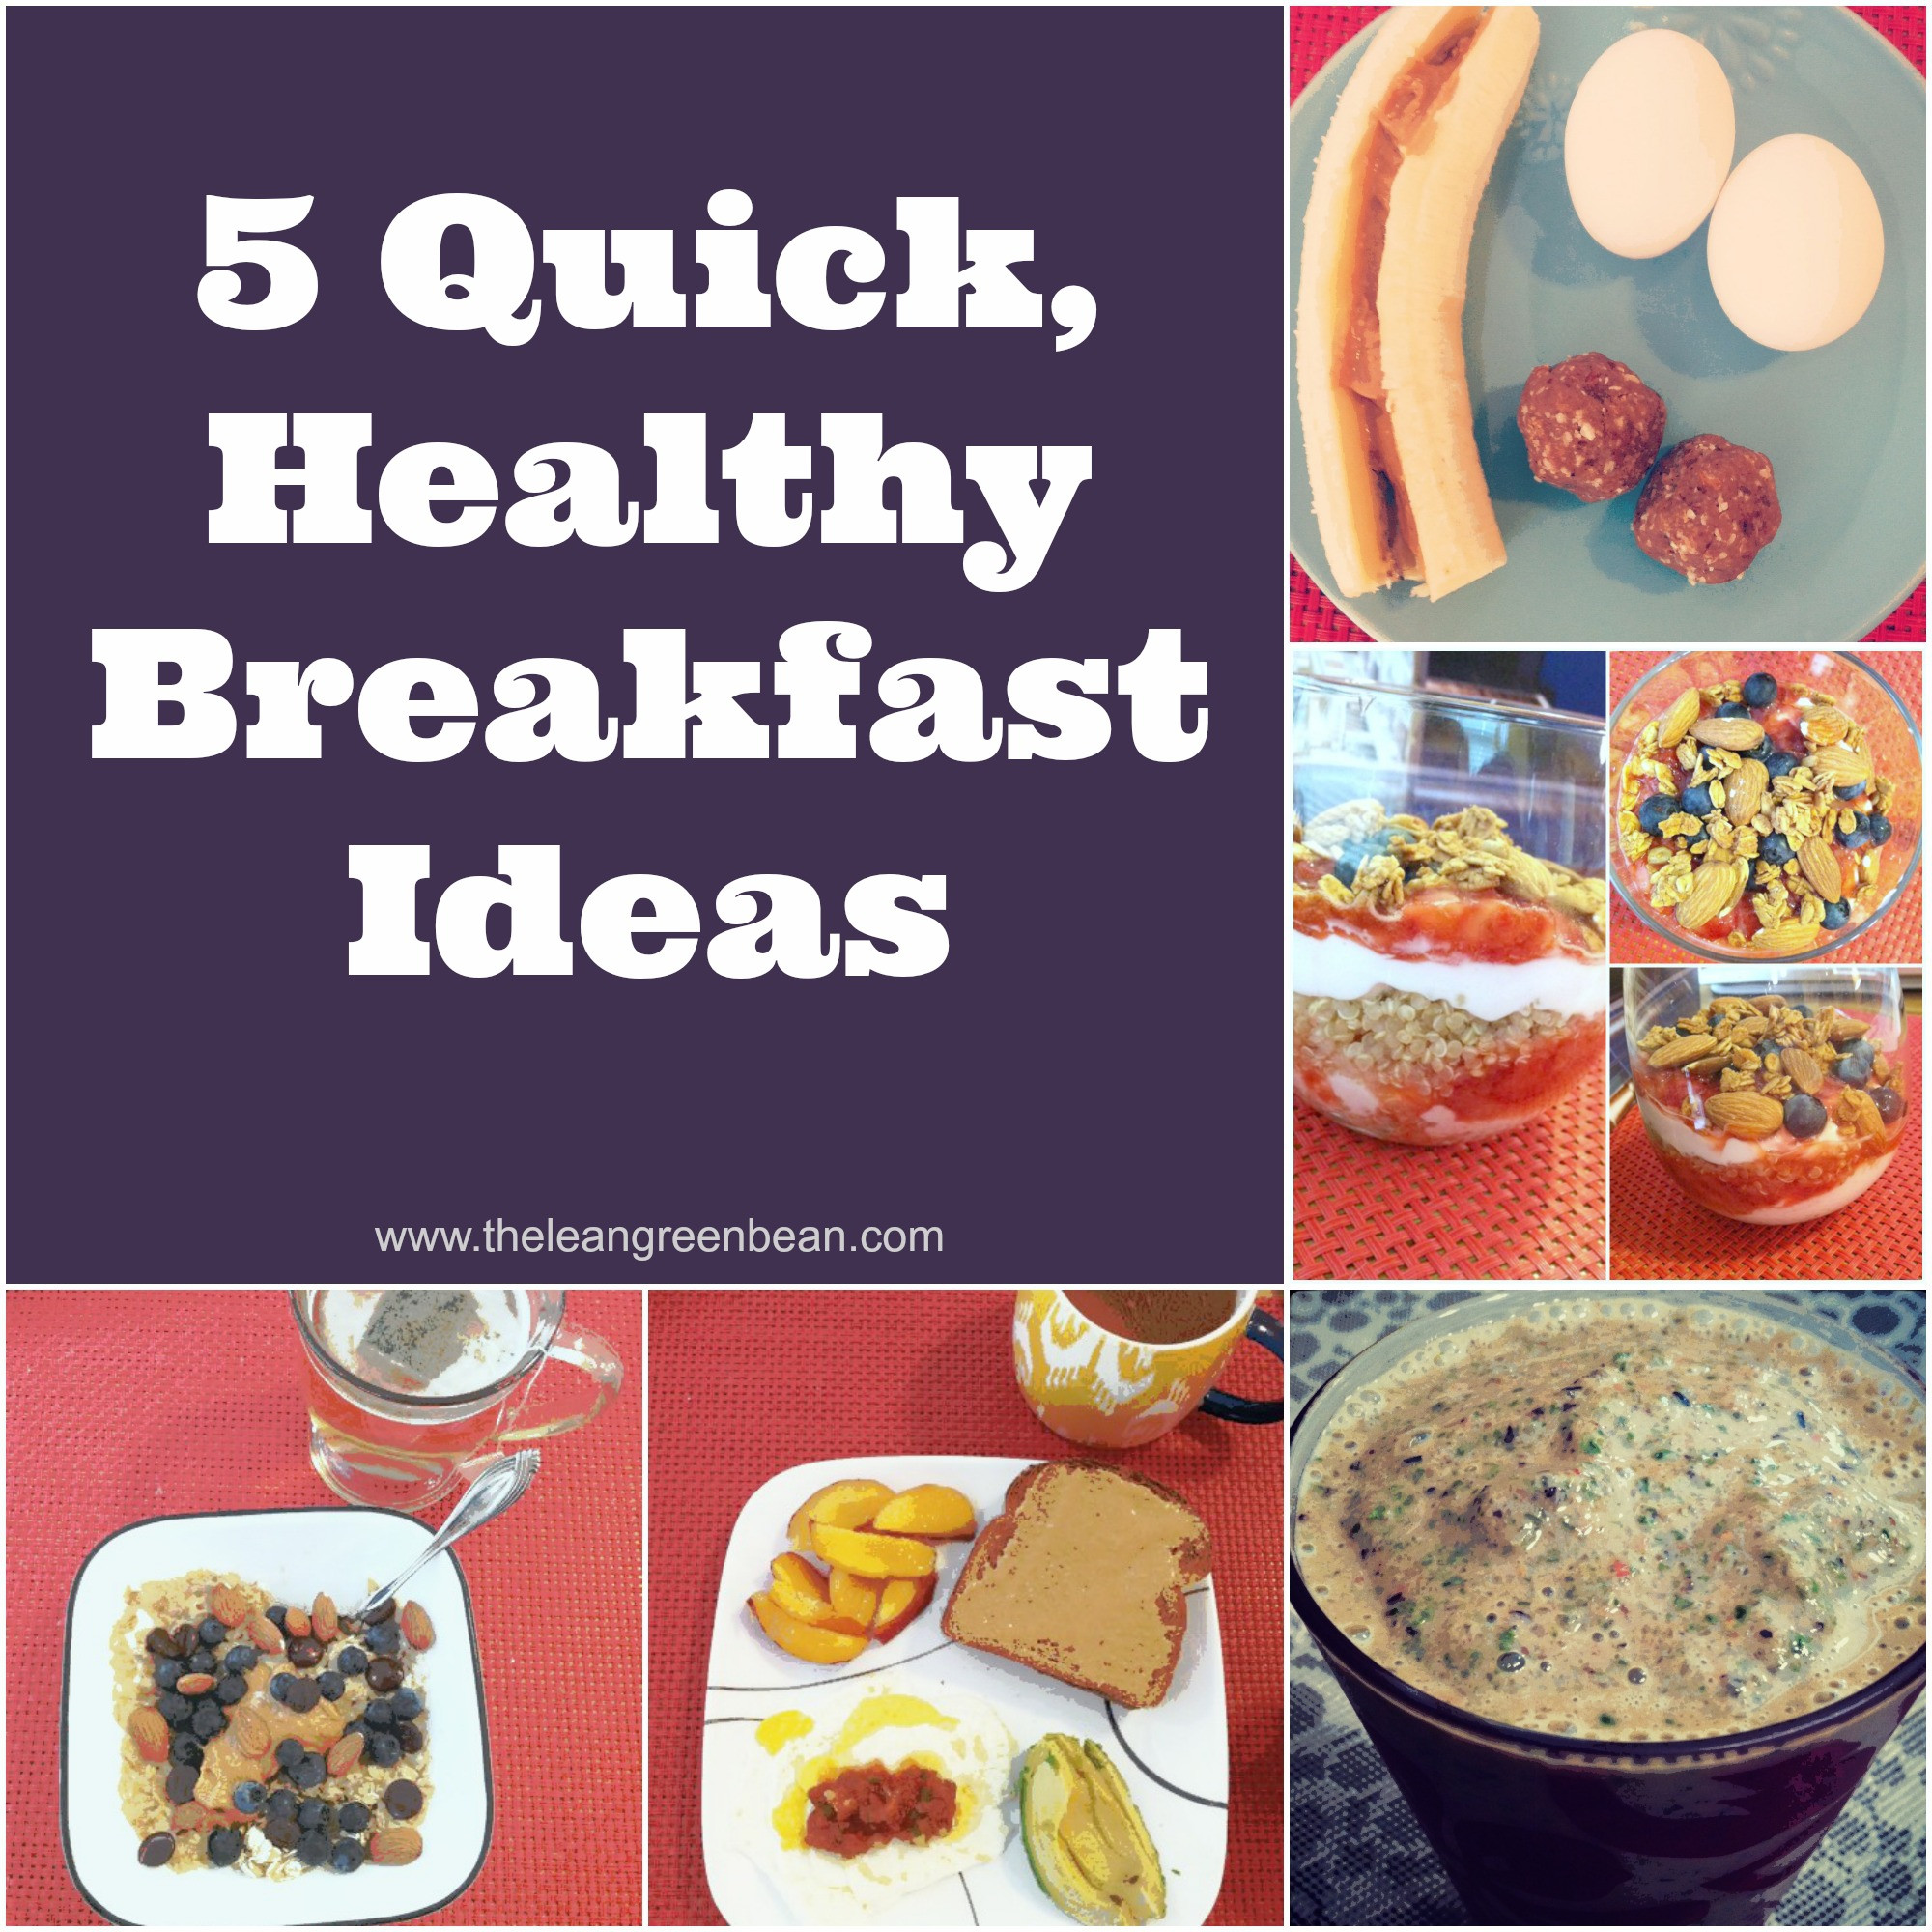 Quick Healthy Breakfast Foods  5 Quick Healthy Breakfast Ideas from a Registered Dietitian